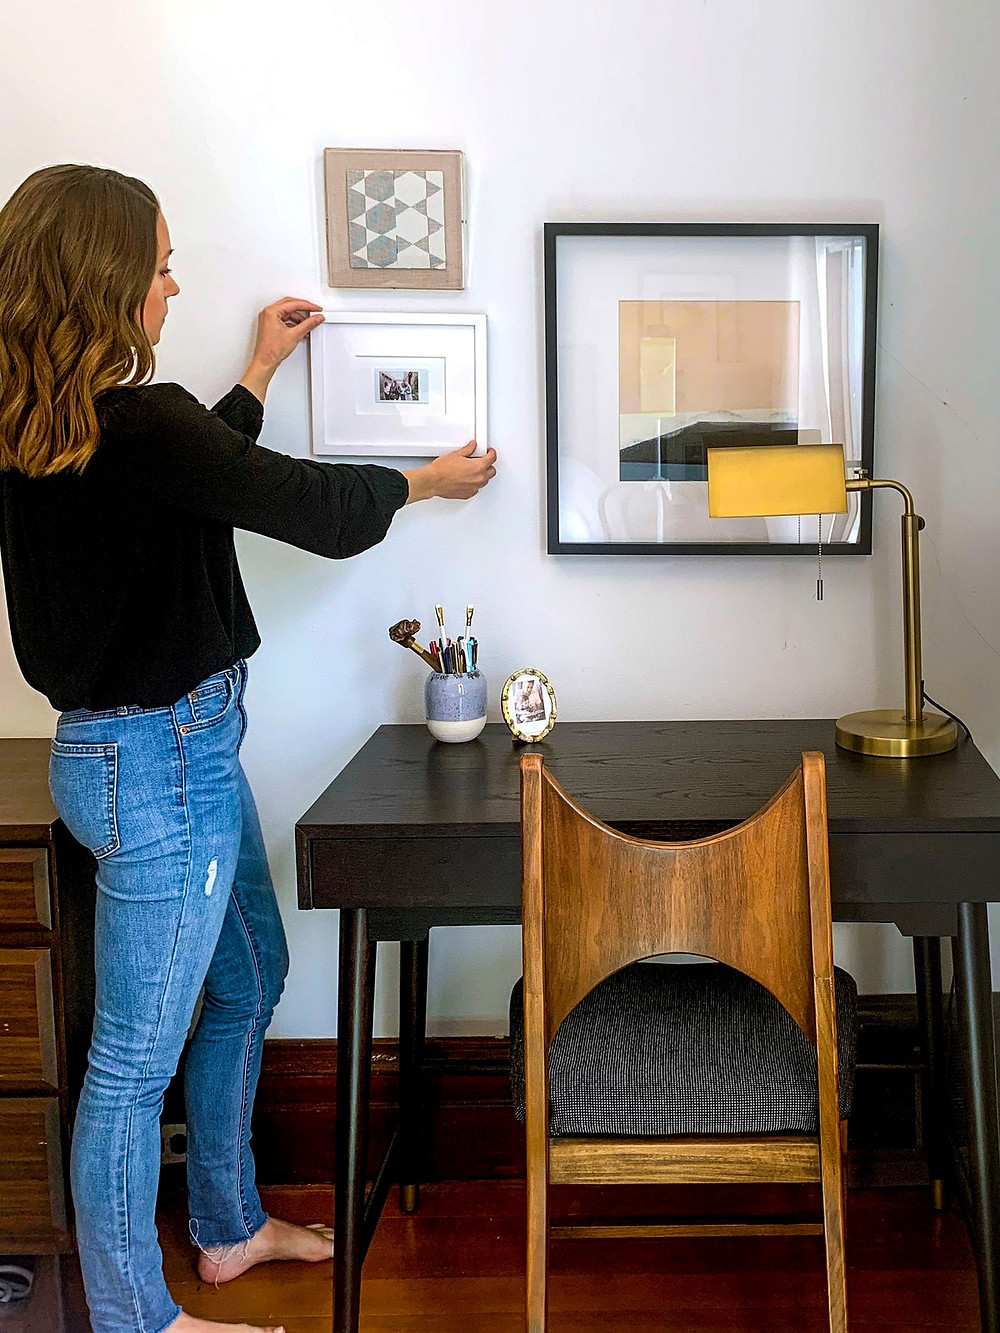 Personalized Interior Design Workshop online experience from Airbnb